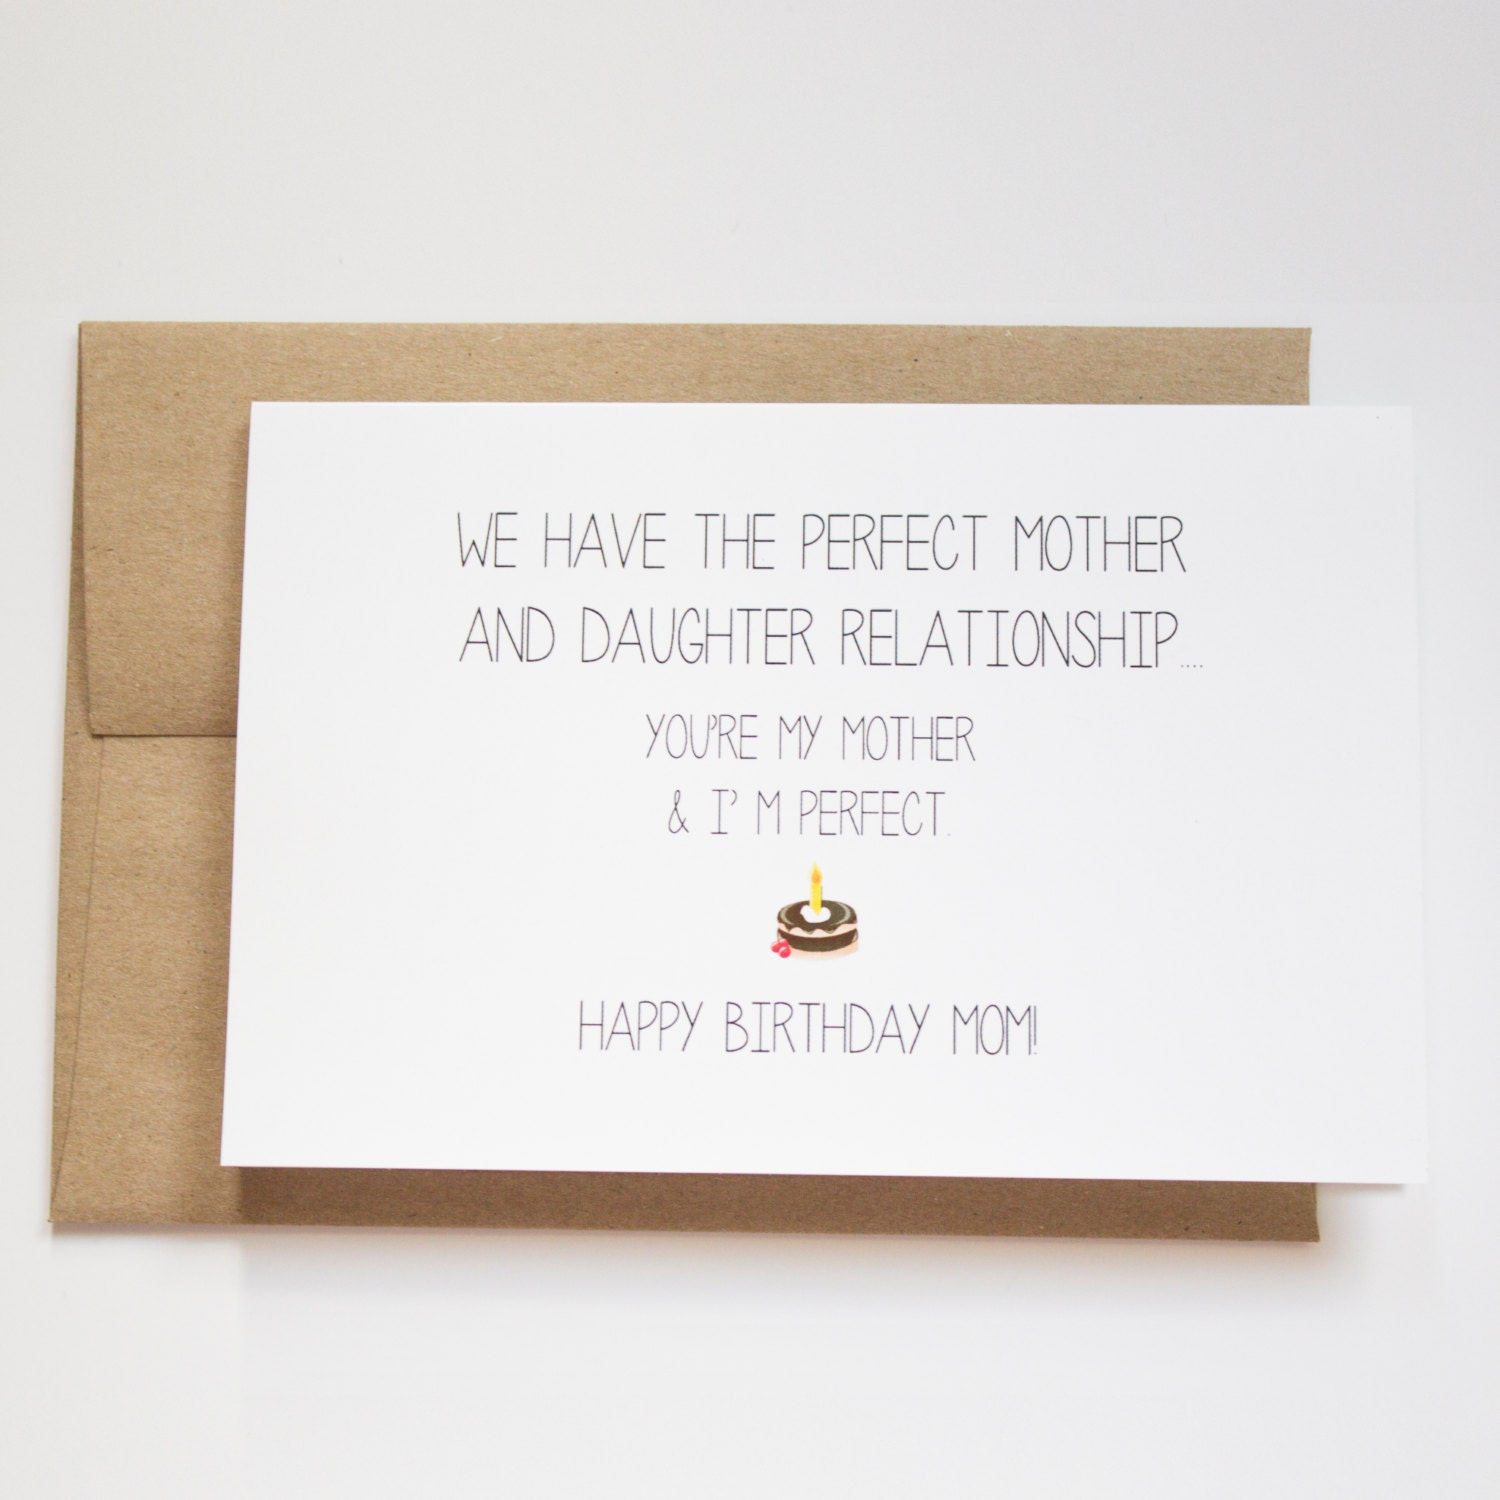 Mom birthday card funny funny birthday cards for mom zoom bookmarktalkfo Images